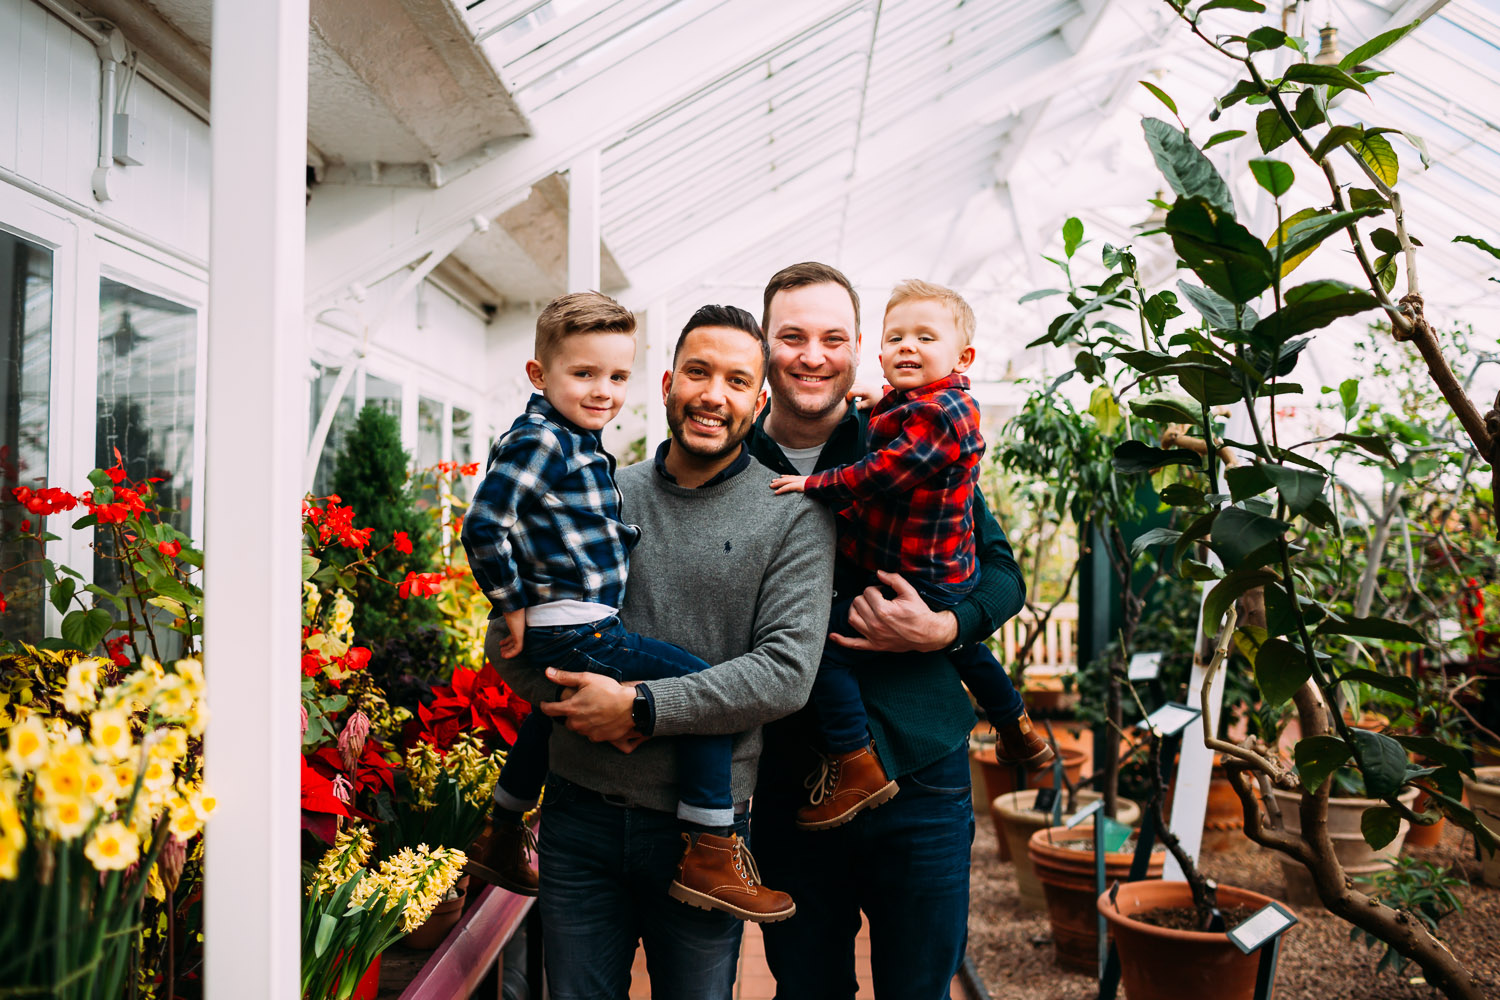 LGBTQ Family shoot in Birmingham Botanical Gardens